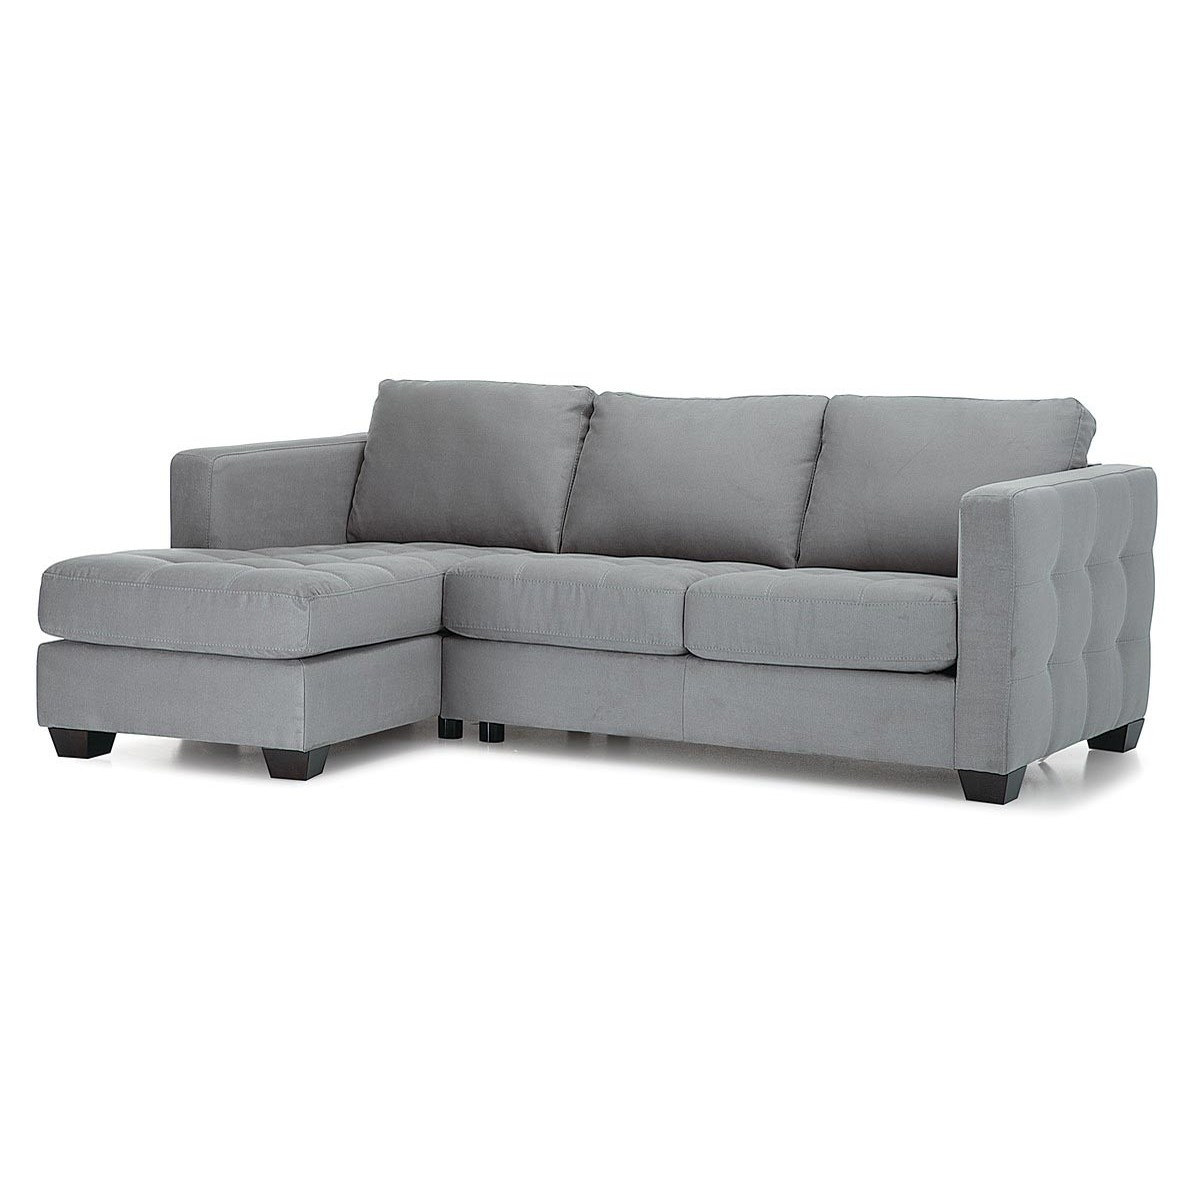 palliser chair and ottoman swivel chairs vancouver bc barrett sofa 2 piece leather sectional